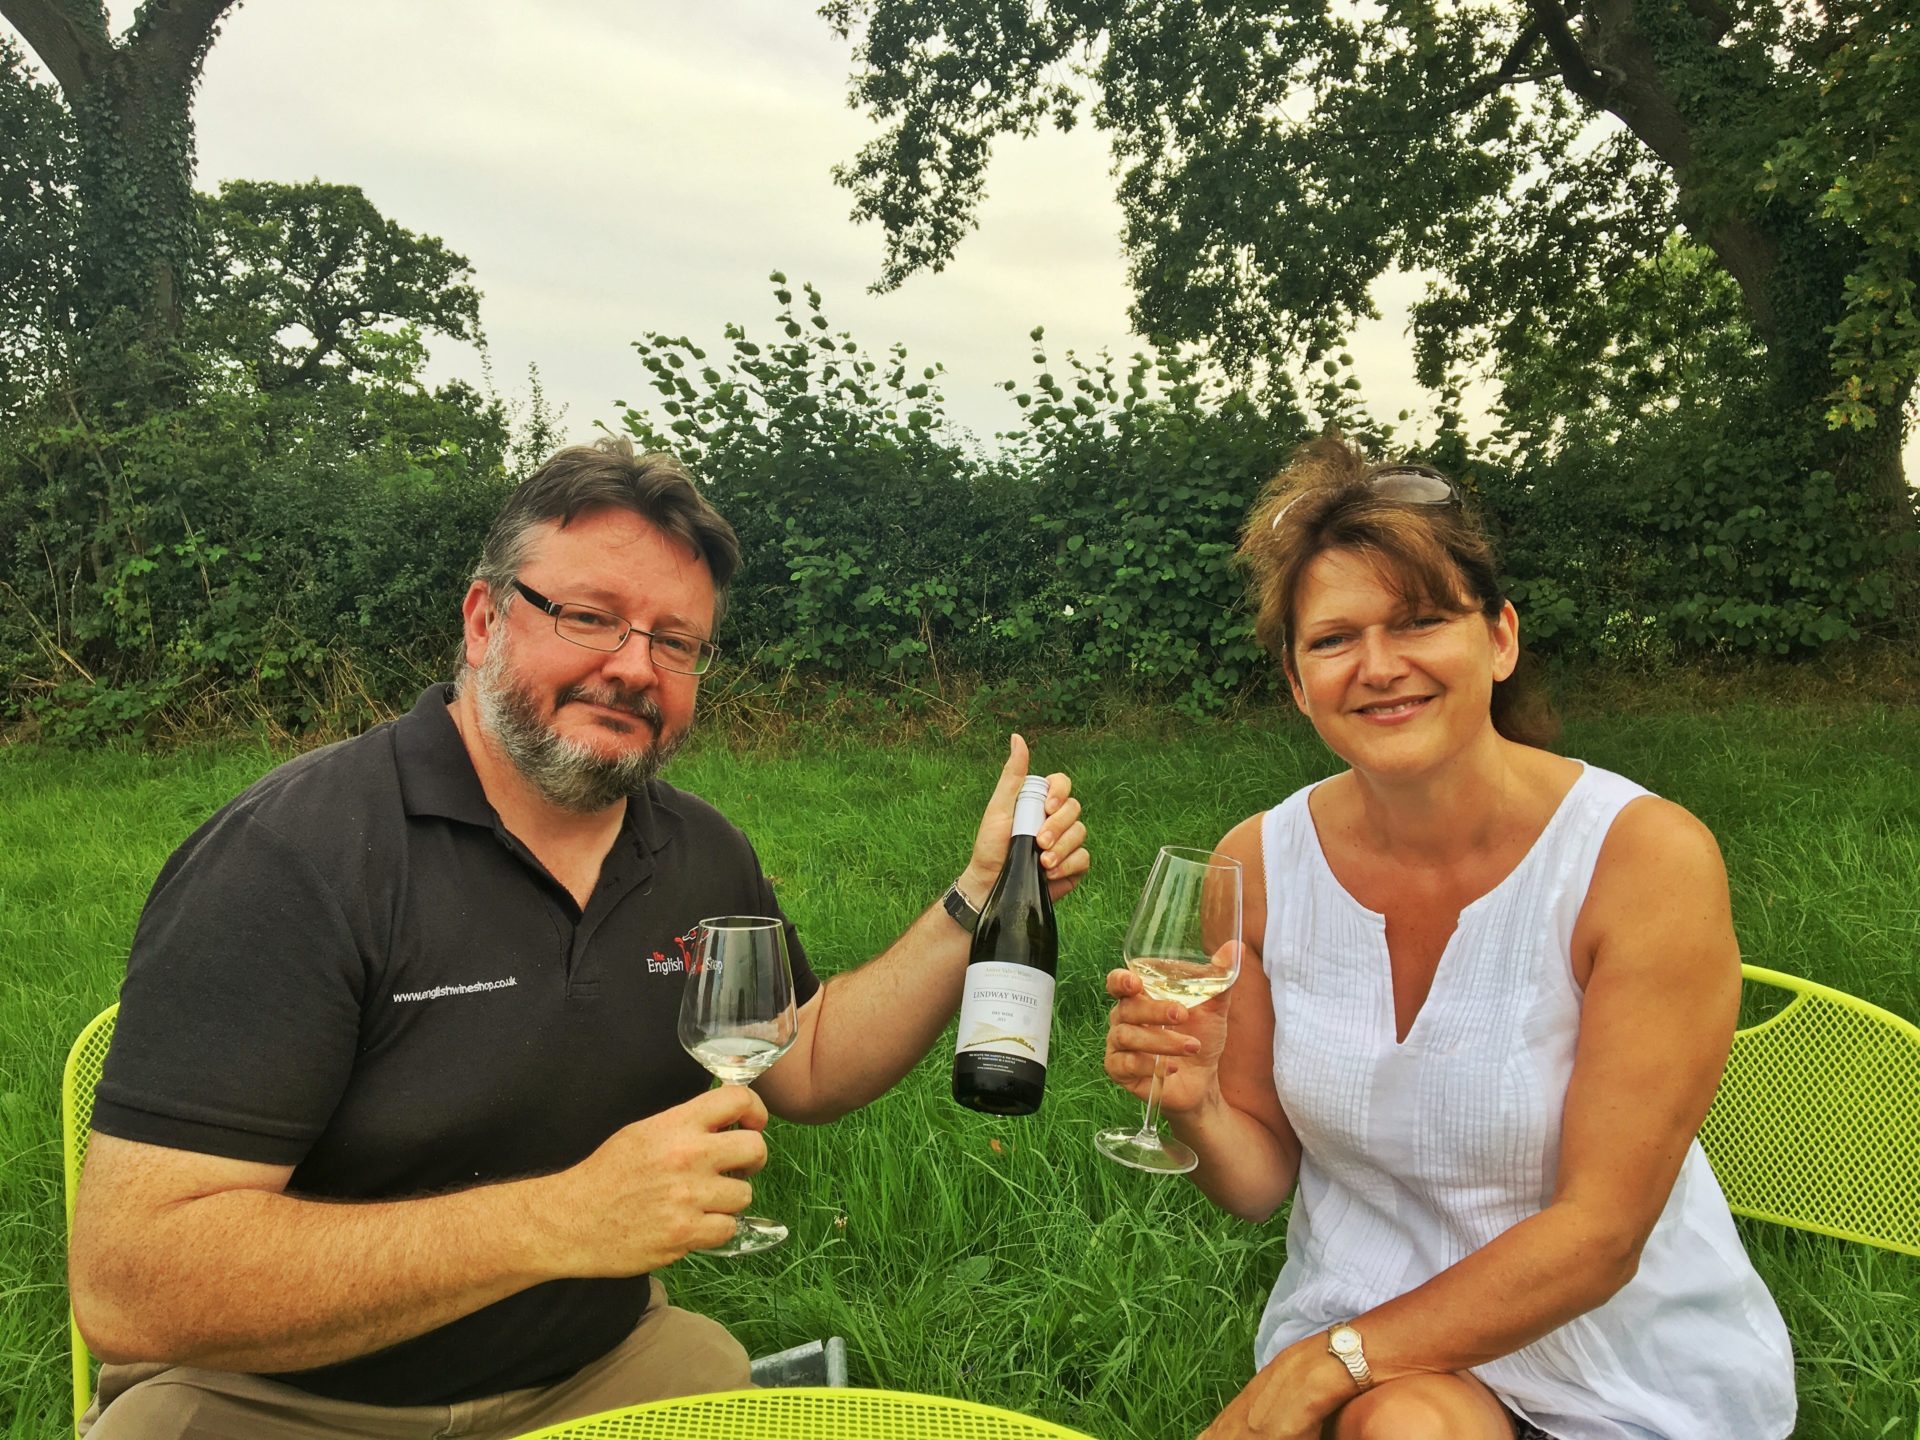 Lucy Arterton and Barry Lewis (of Amber Valley wine) sampling the Lindway White in a field with hedgerows and trees in the background